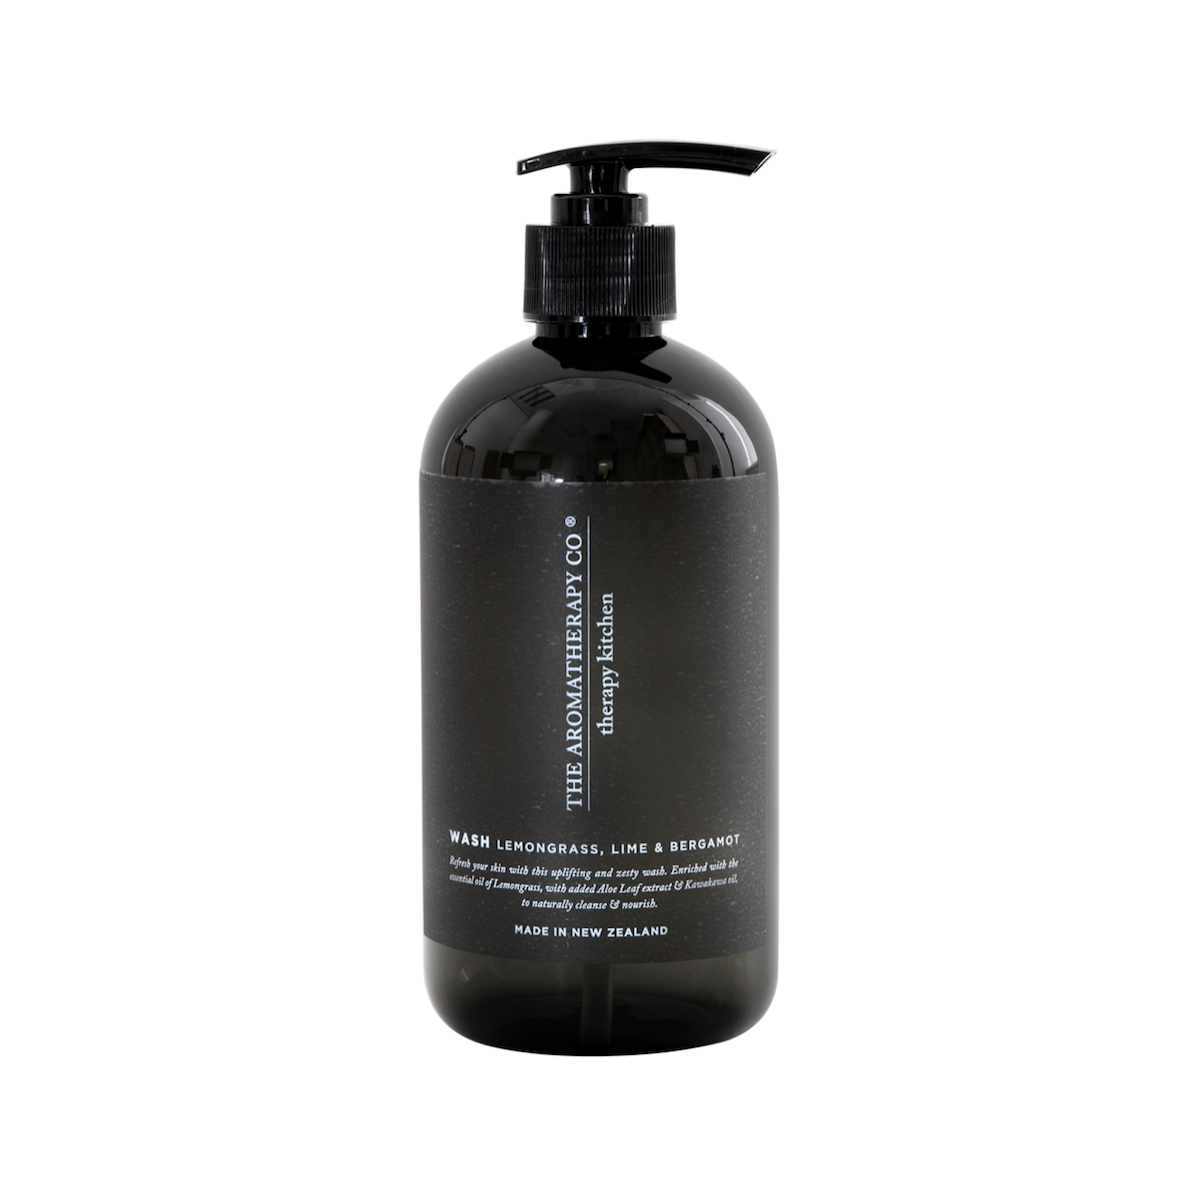 Lemongrass, Lime and Bergamot Hand Wash